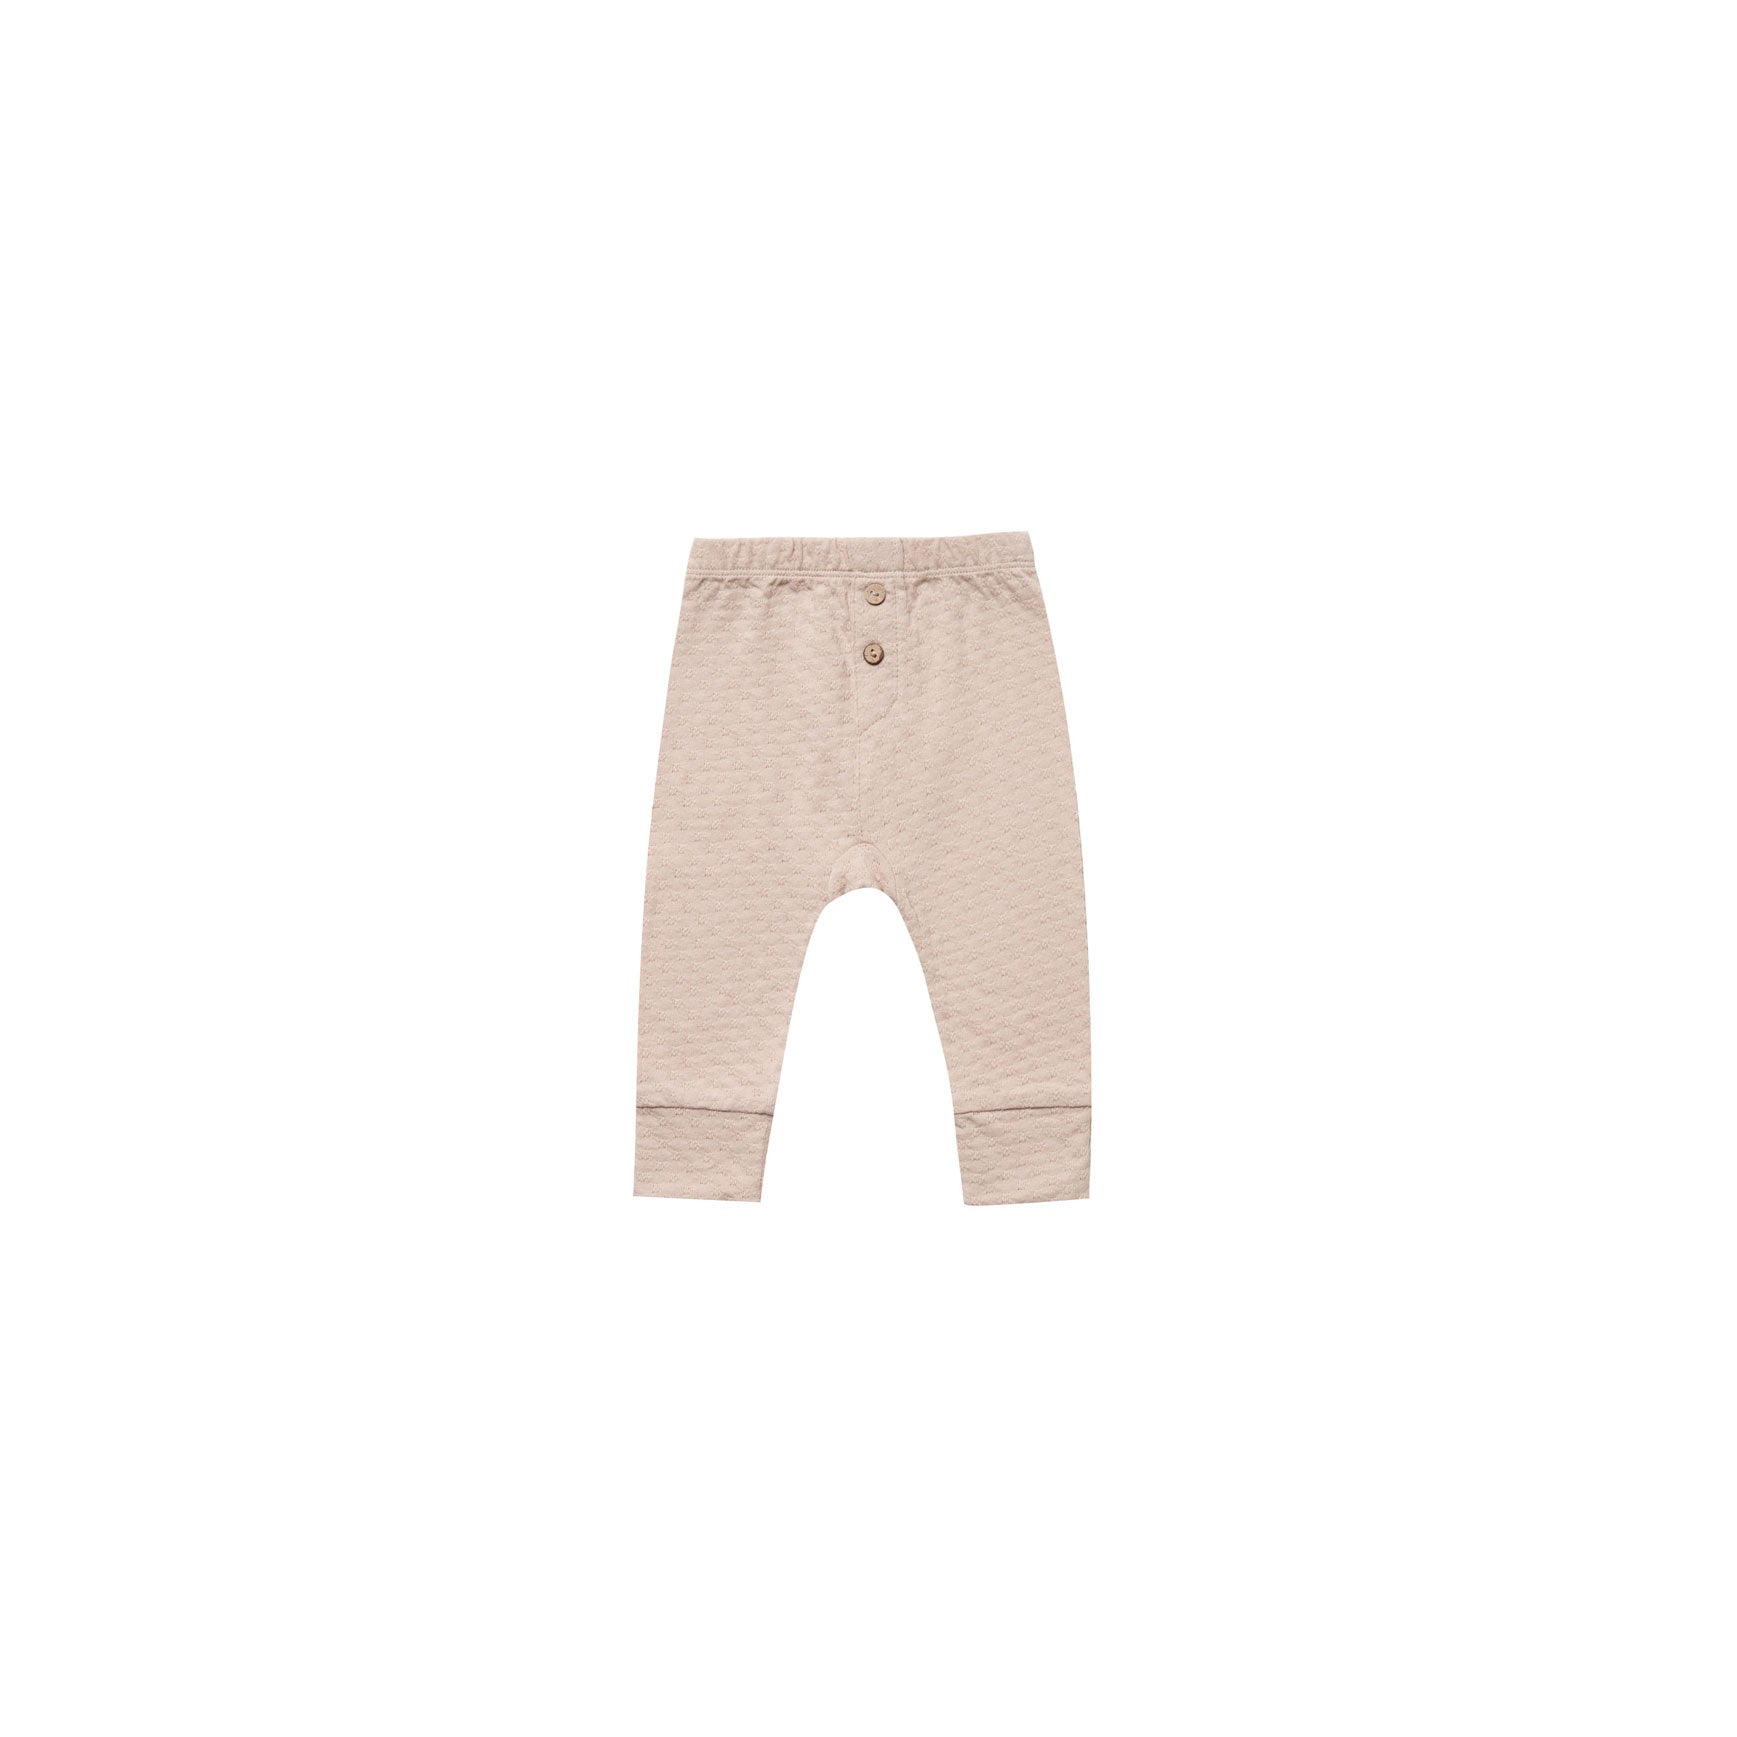 Quincy Mae Rose Organic Pointelle Pajama Pants